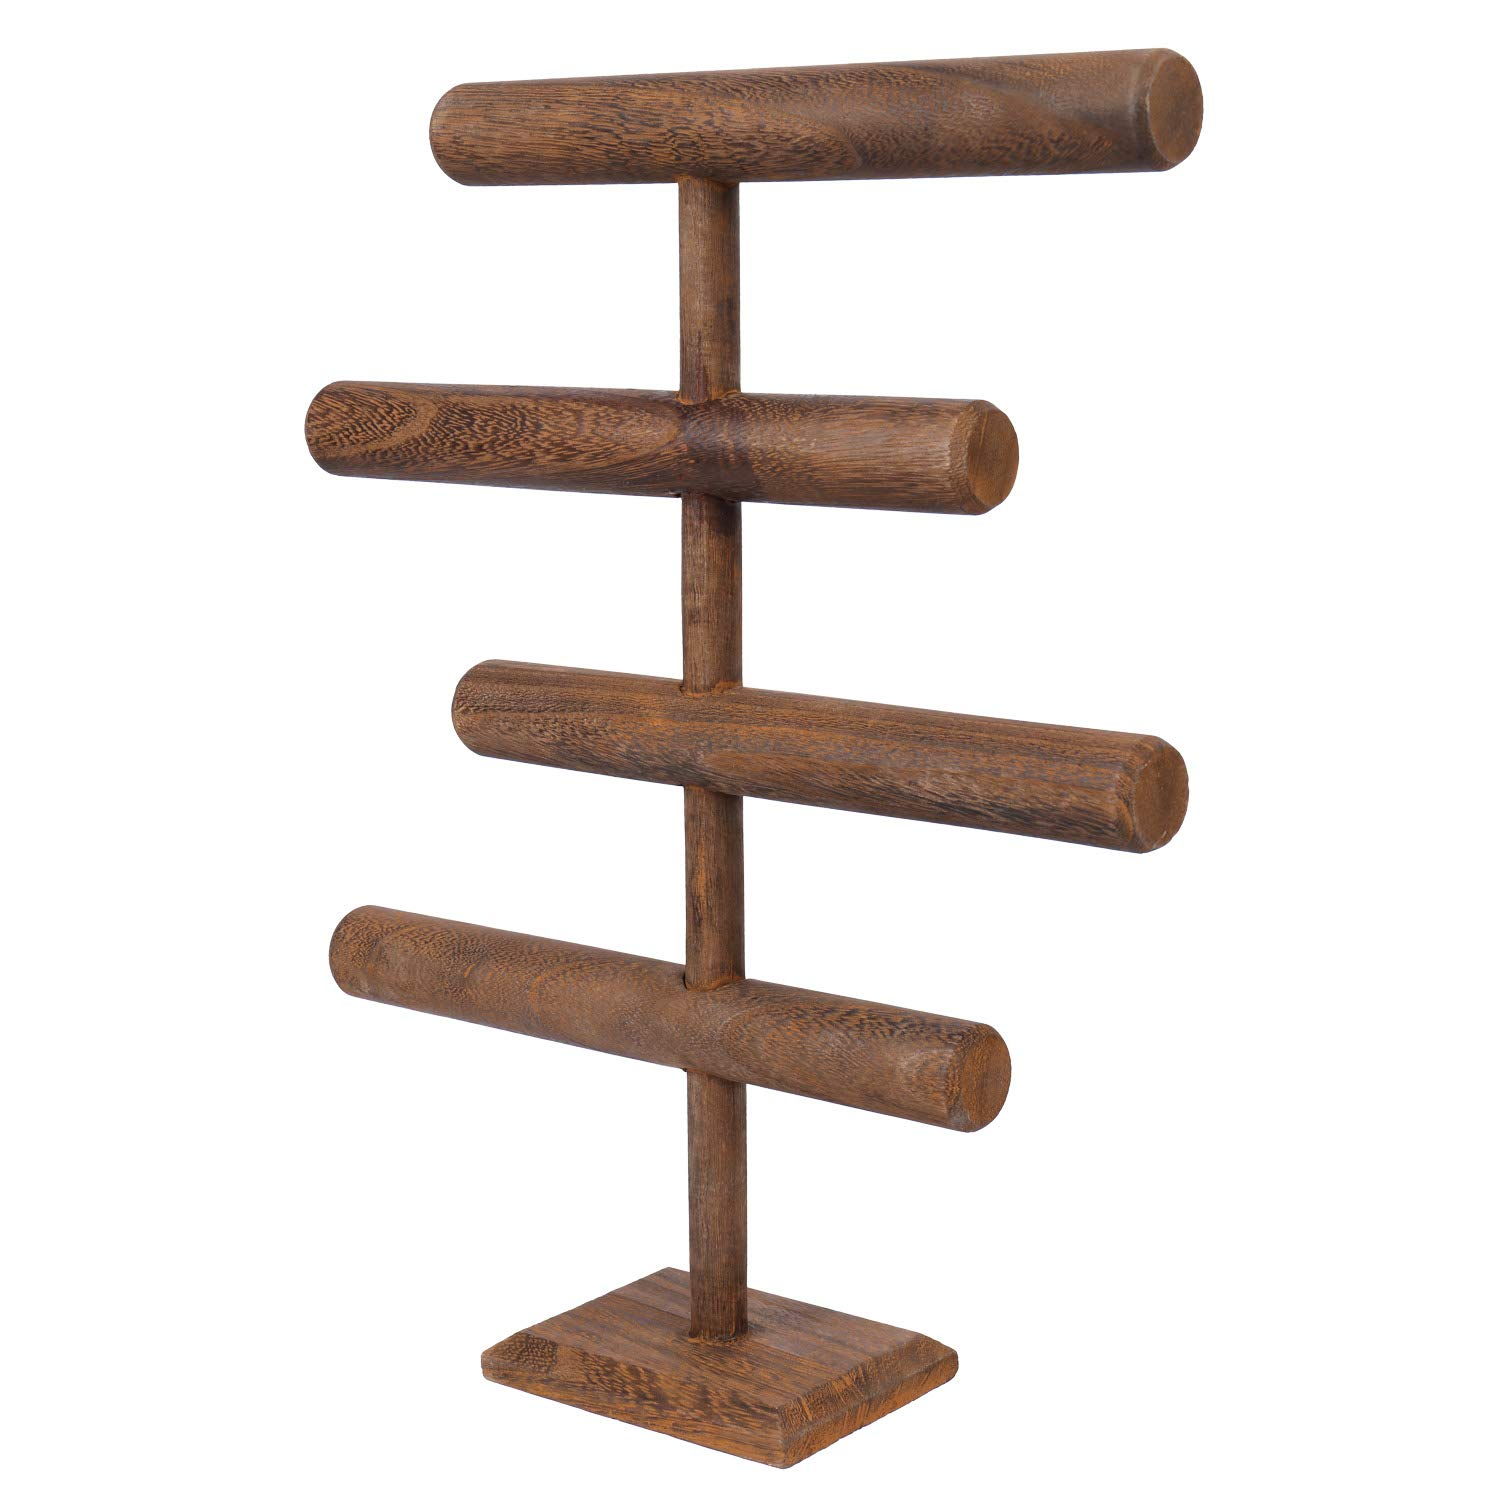 Wooden jewelry display holder pine wood rack for jewelry display